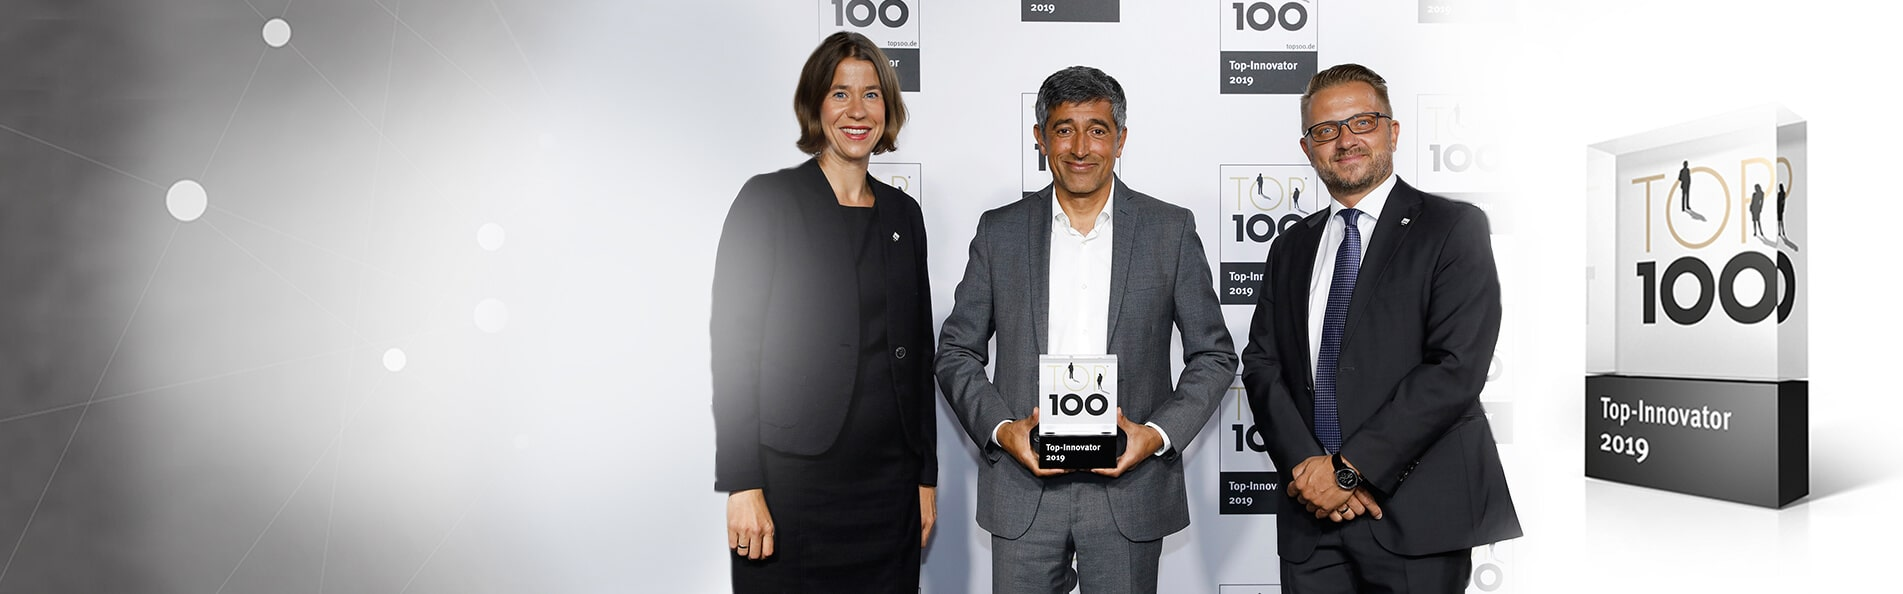 PROXIA scoops the TOP 100award for innovation